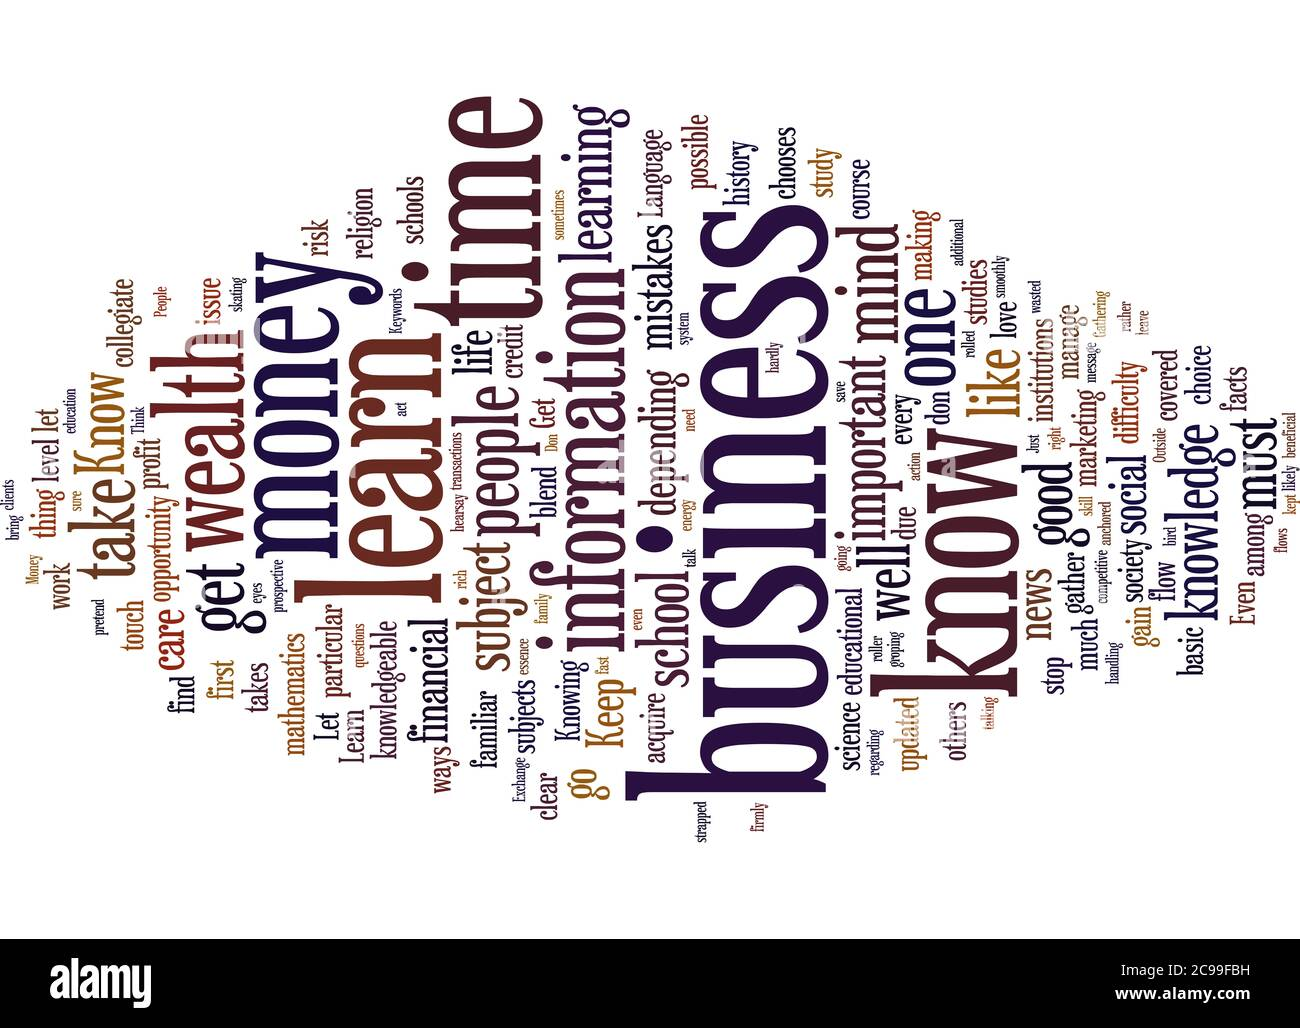 Word Cloud Summary of article The Learning Process About Money And Wealth Stock Photo